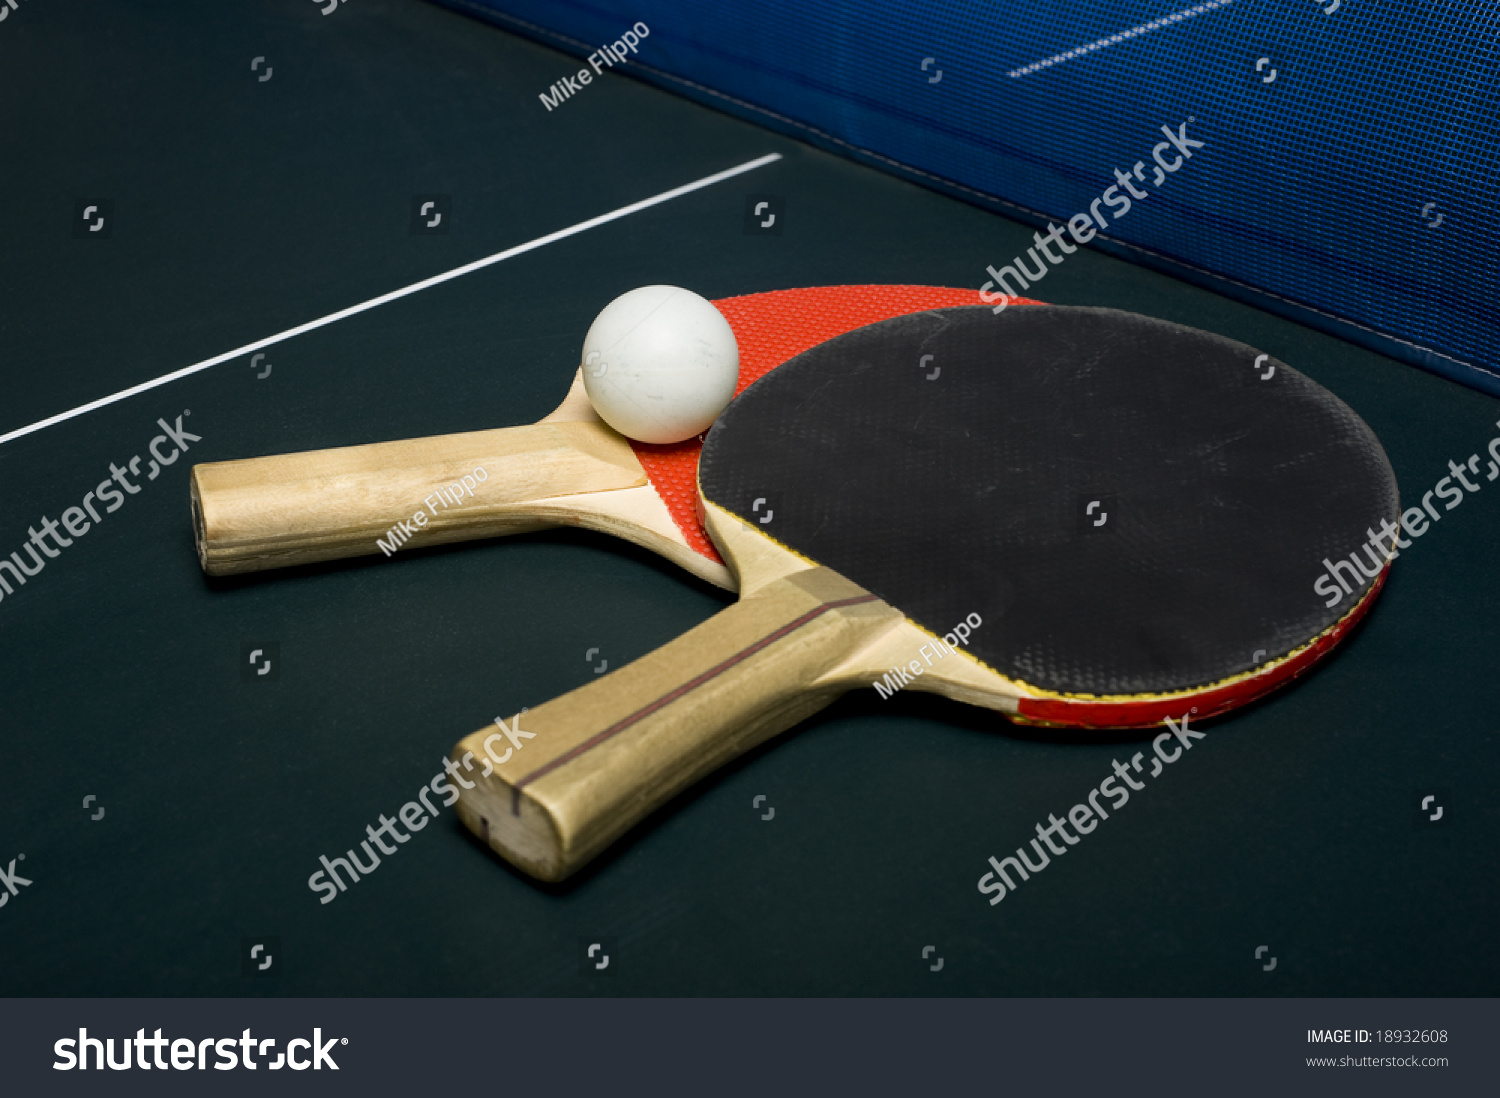 Ping pong or table tennis equipment or supplies on a playing surface stock photo 18932608 - Equipment for table tennis ...